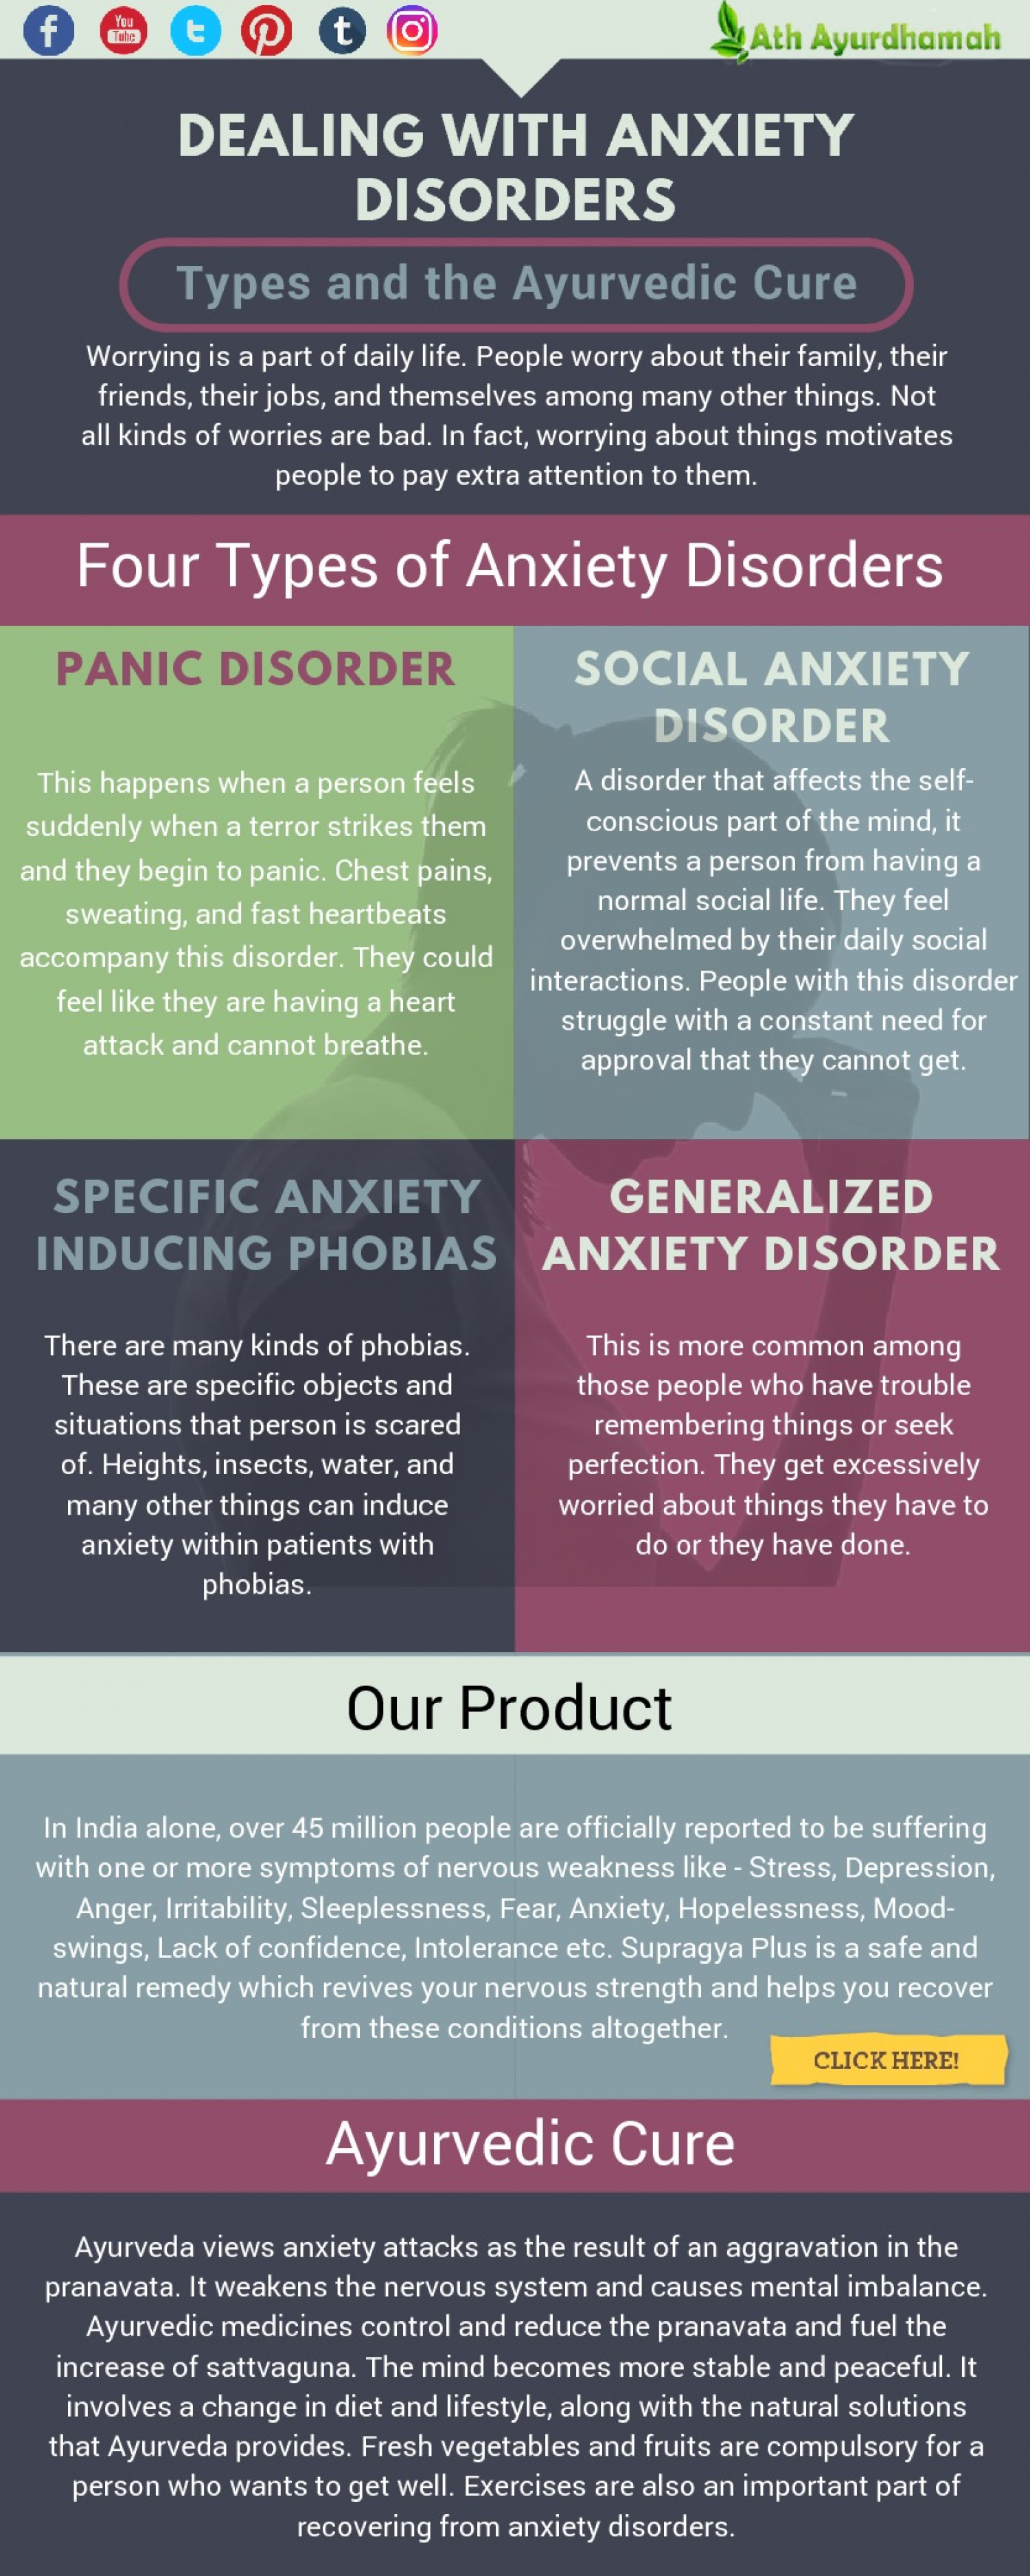 Dealing With Anxiety Disorders Infographic